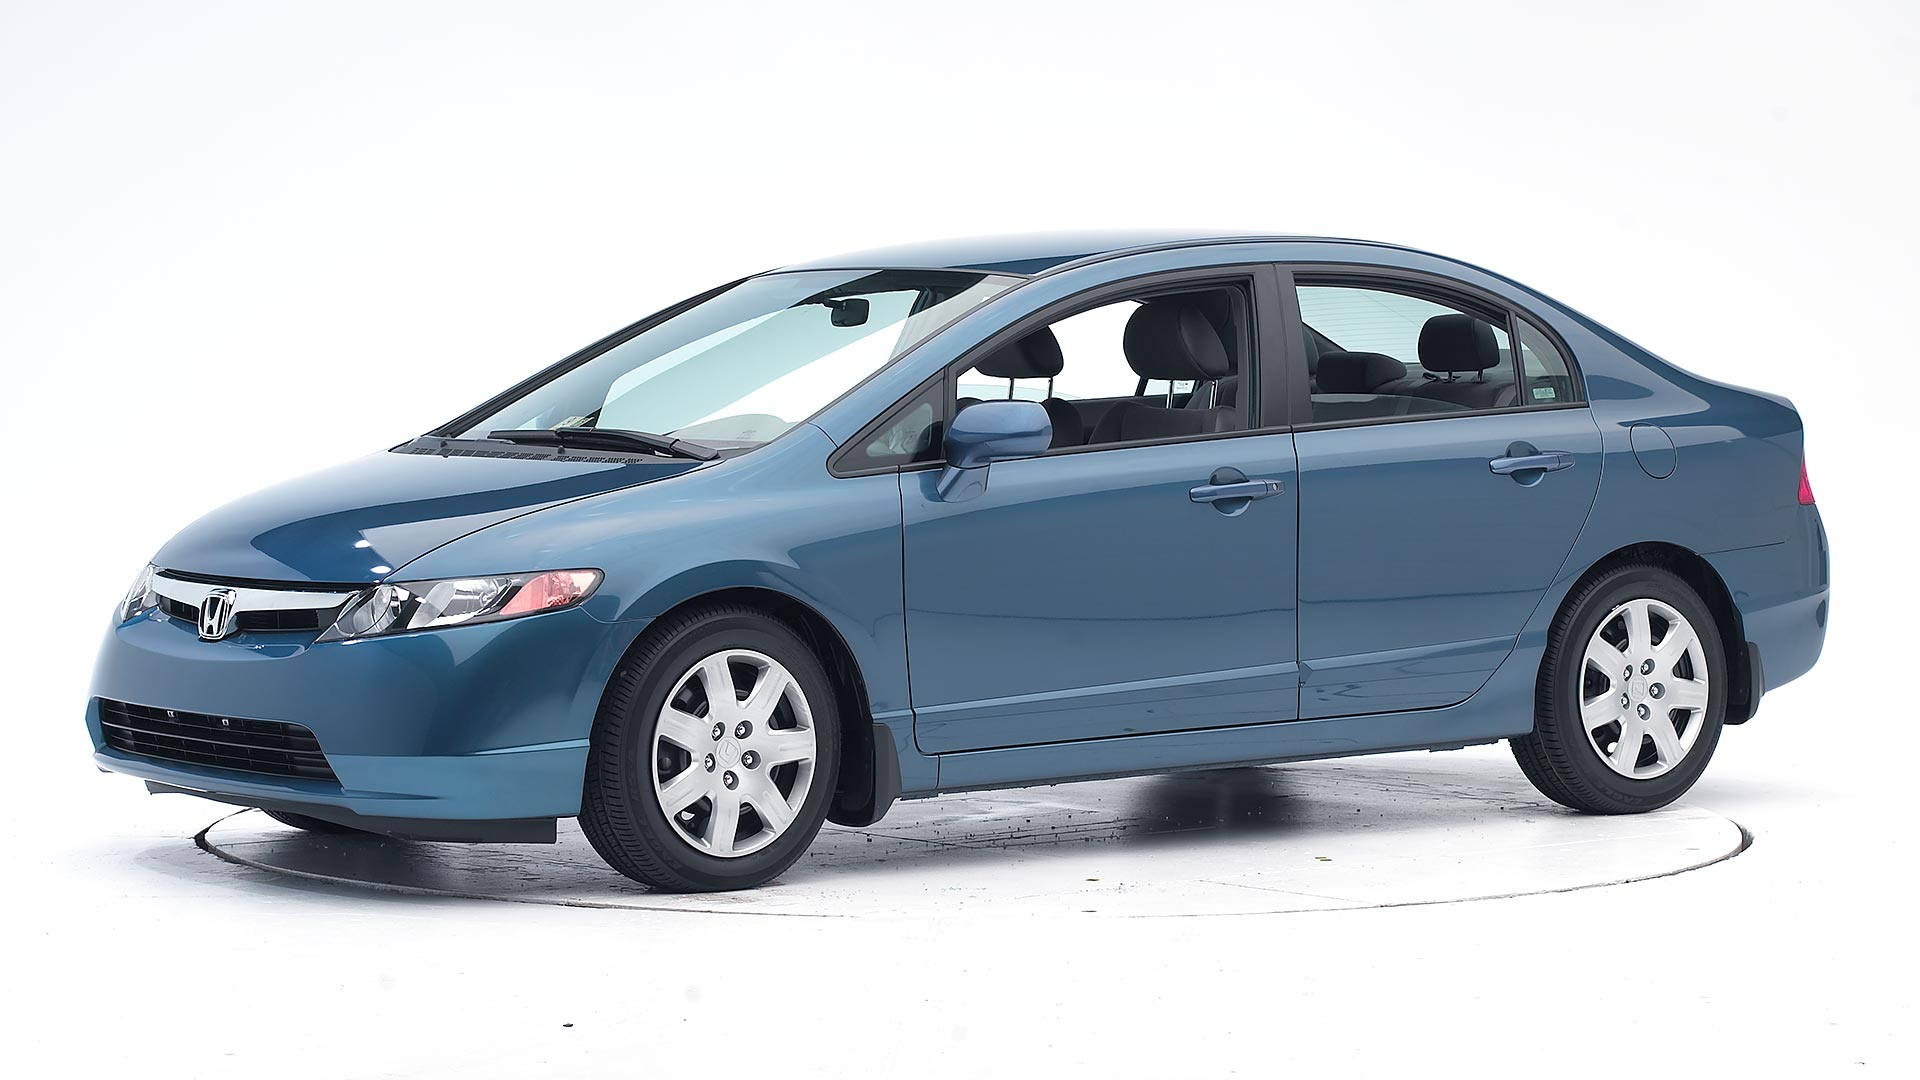 2006 Honda Civic 4-door sedan